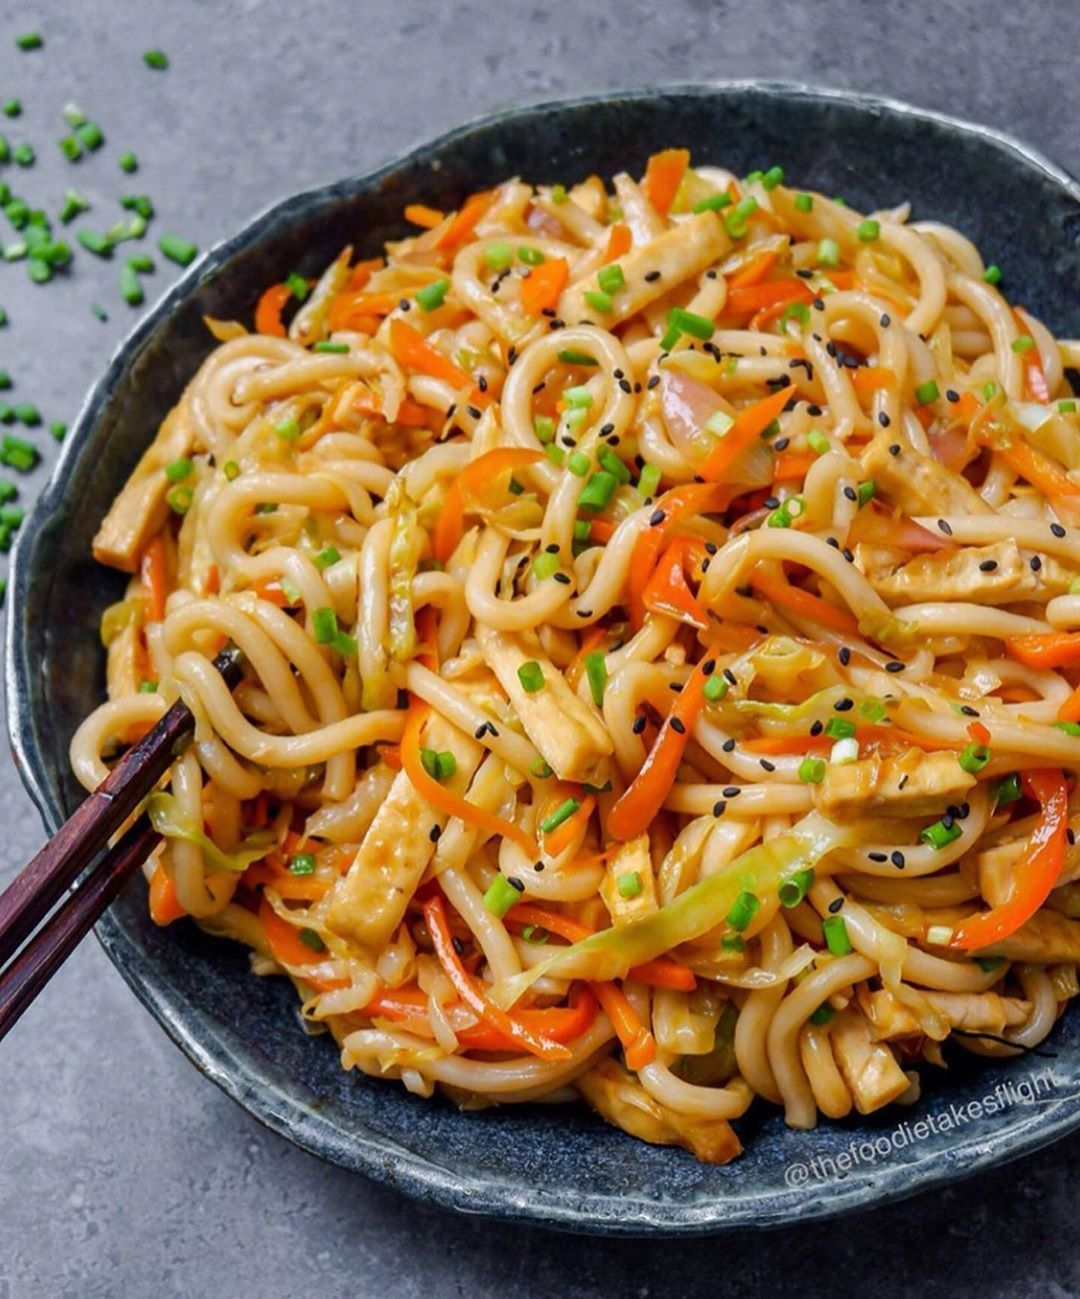 Best Of Vegan Vegan Recipes On Instagram Sweet And Spicy Udon Noodle Stir Fry By Thefoodietakesf In 2020 Udon Noodles Stir Fry Udon Noodles Healthy Snacks Recipes